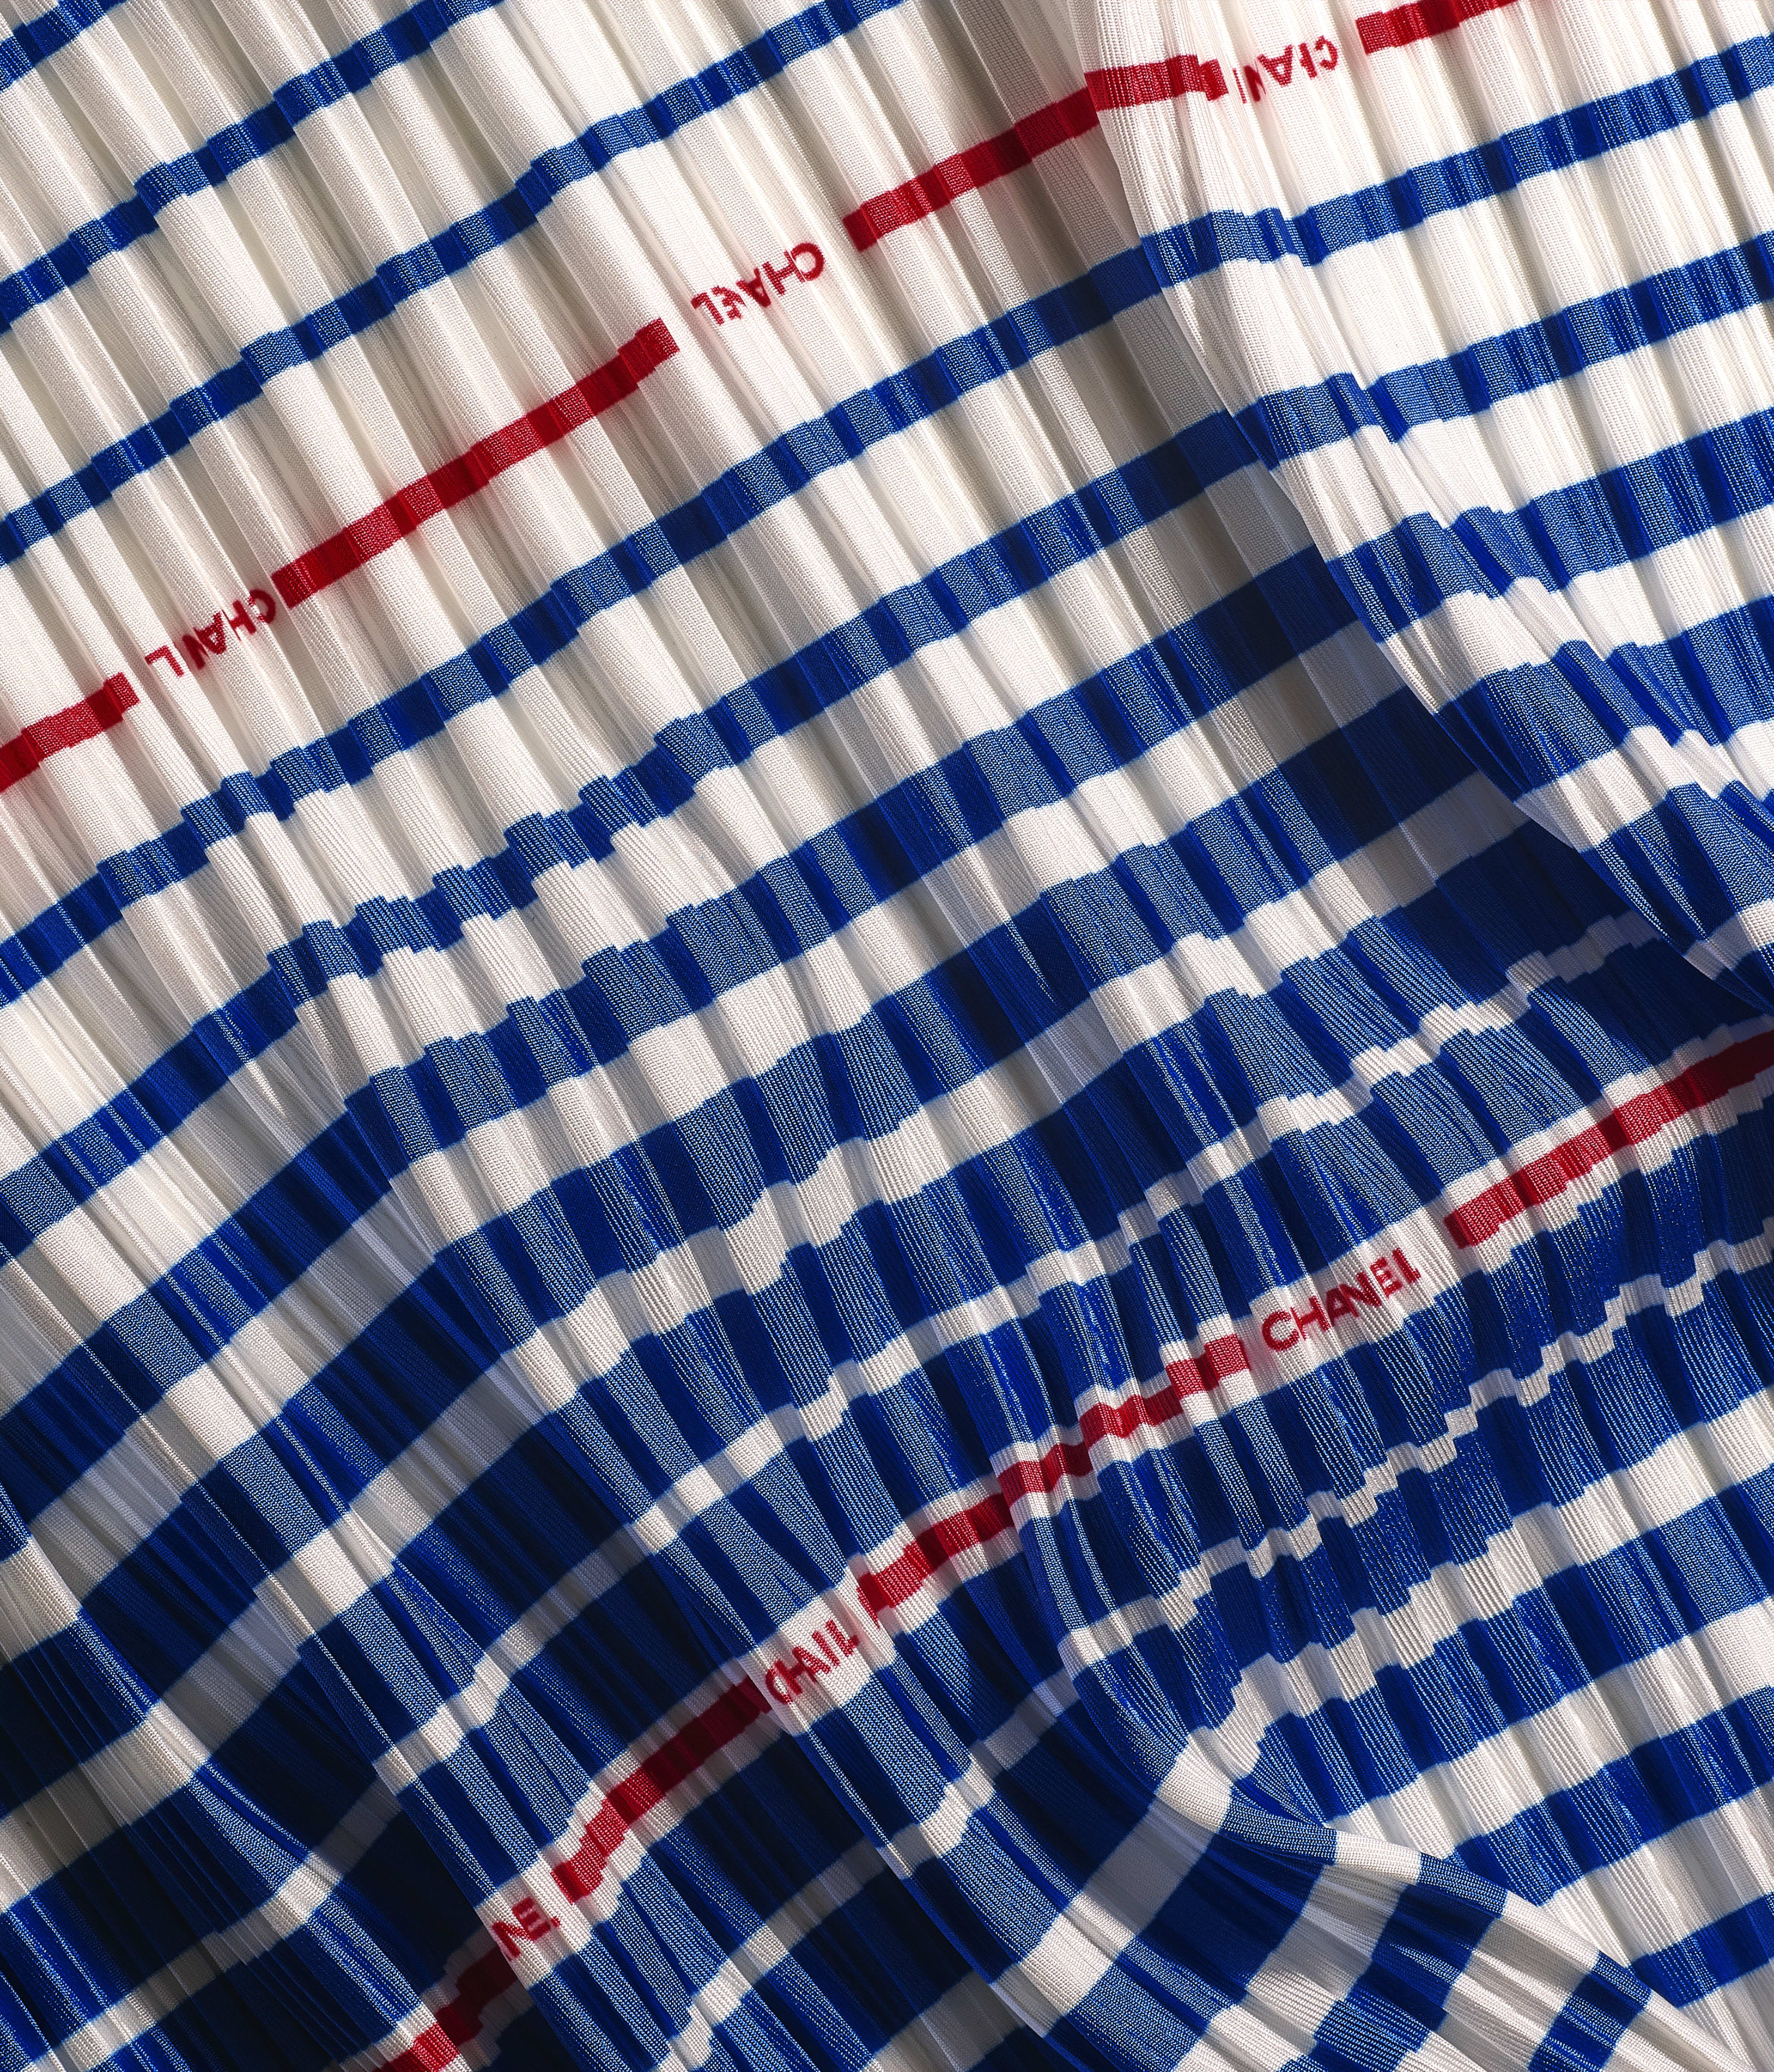 Square Scarf Silk Twill Navy Blue Red Ref Aaxc